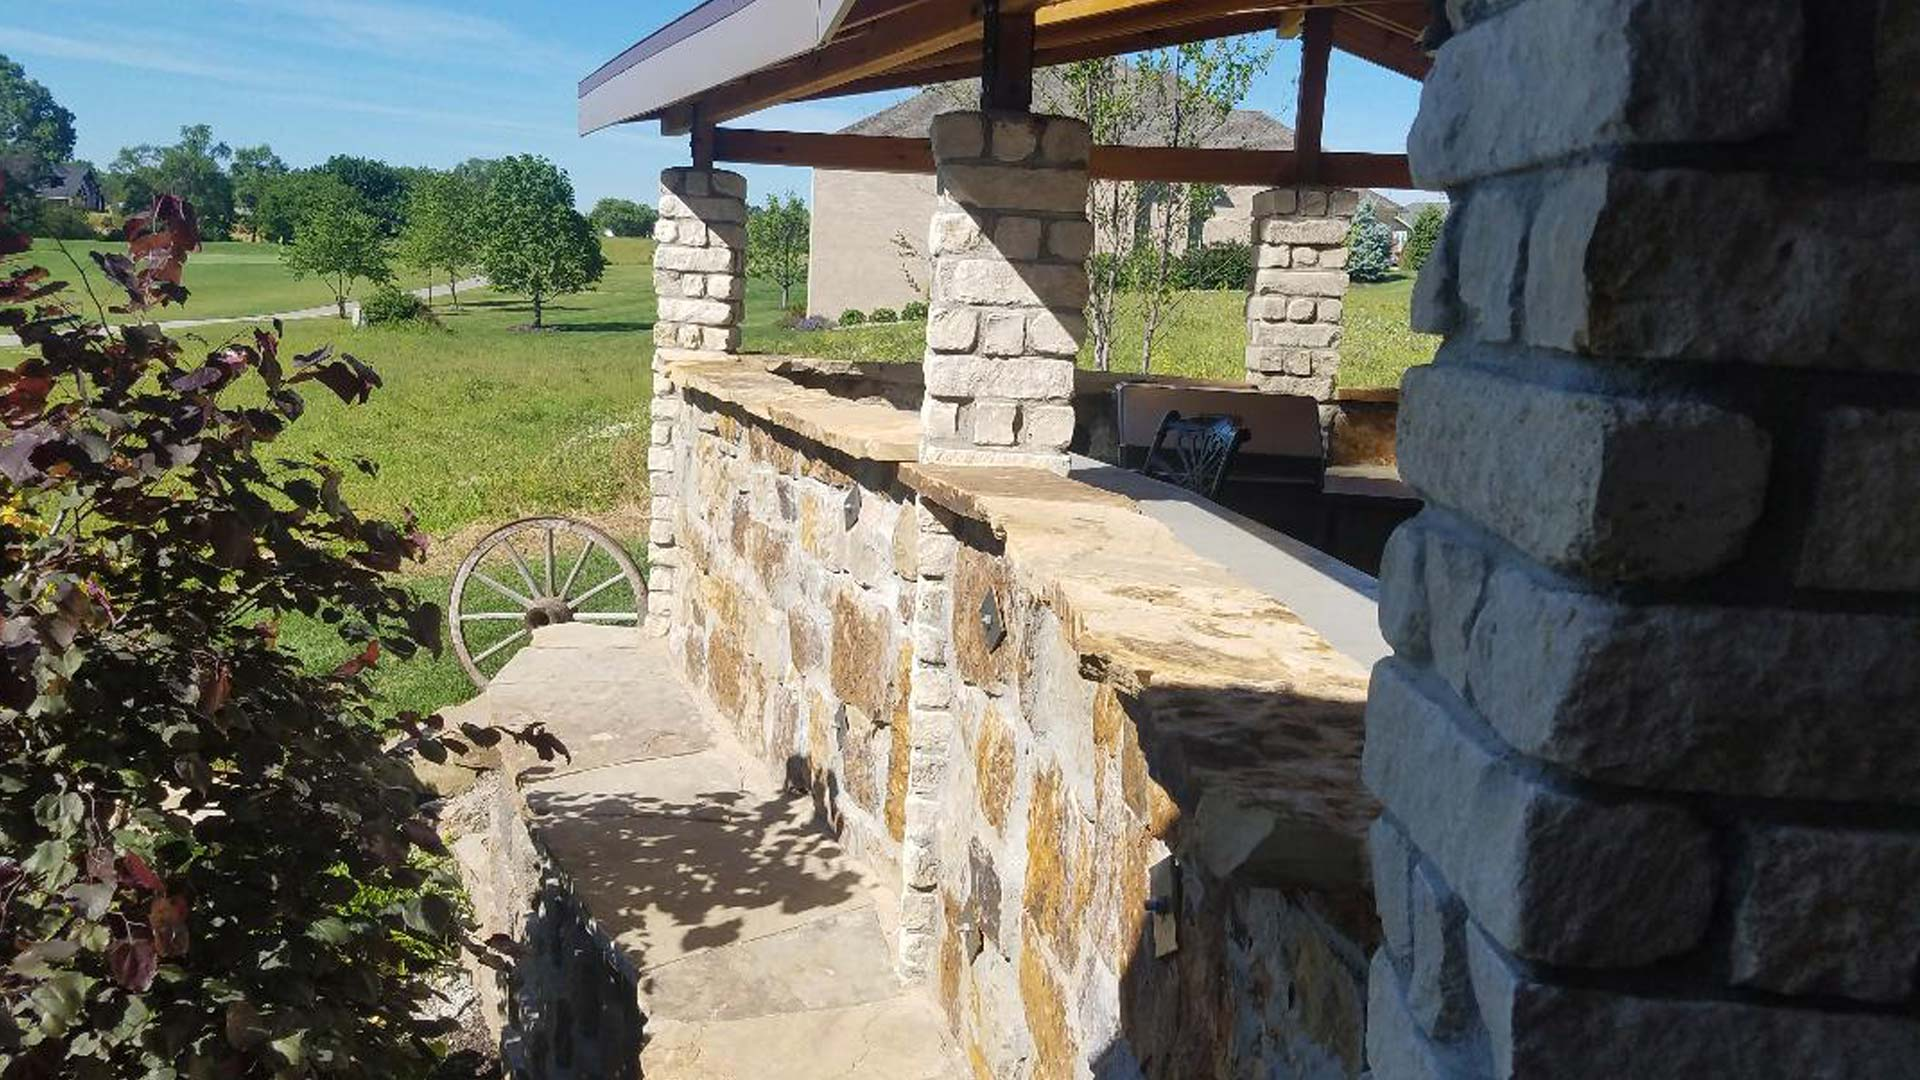 The outside walls of an outdoor kitchen that out team built at a home Lancaster County.